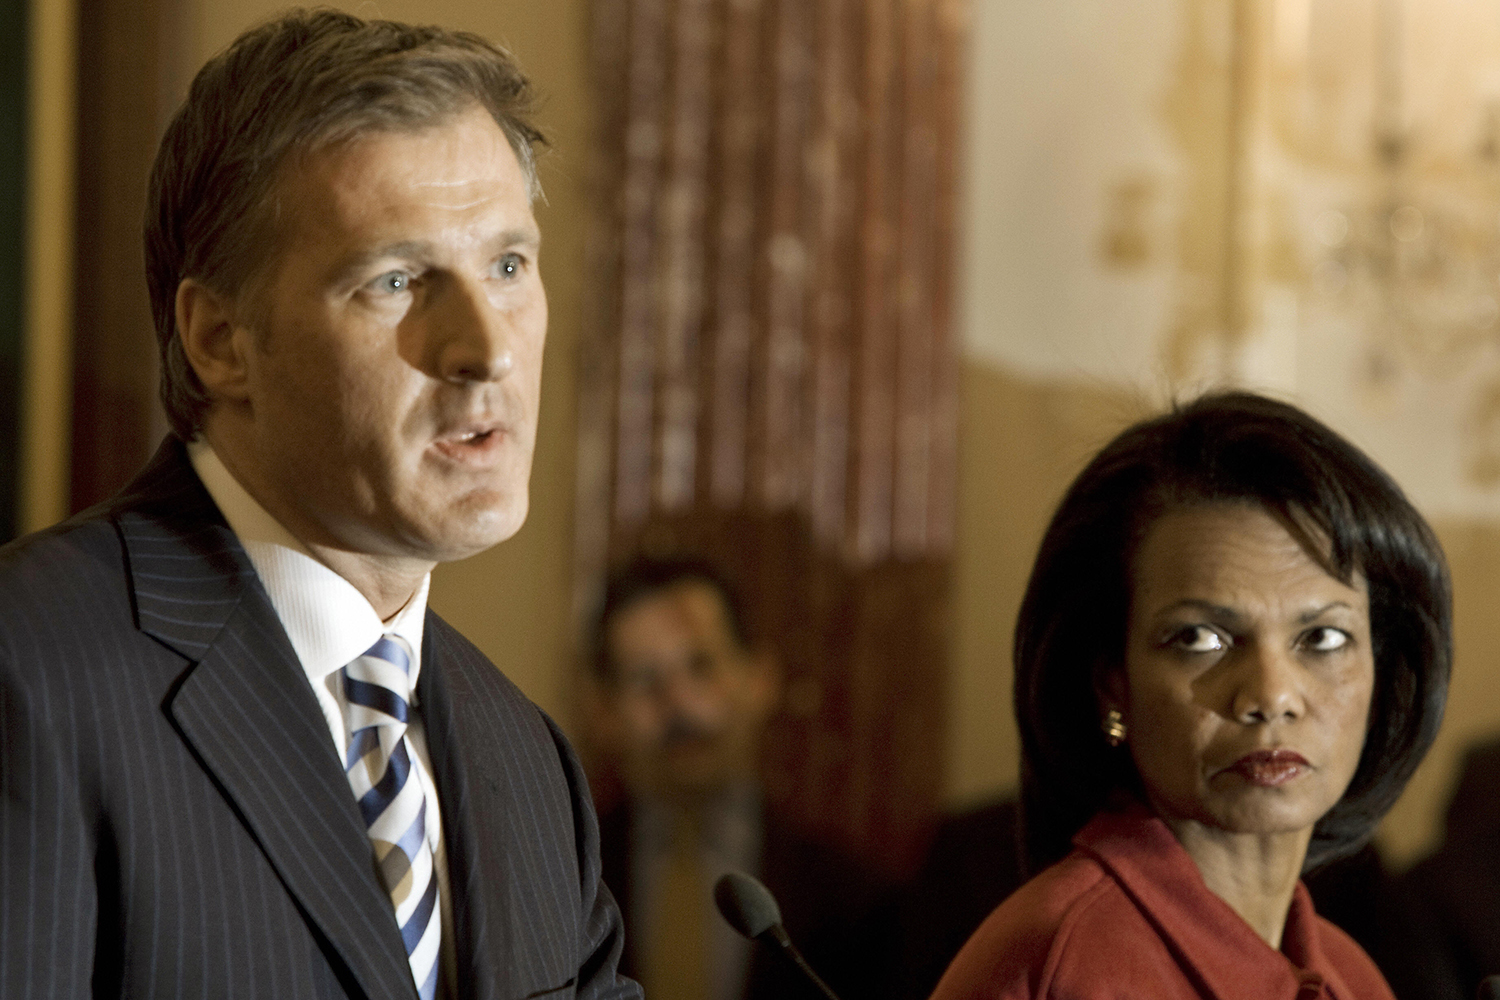 Canadian Minister of Foreign Affairs Maxime Bernier and U.S. Secretary of State Condoleezza Rice conduct a joint news conference at the State Department in Washington on Dec. 20, 2007.